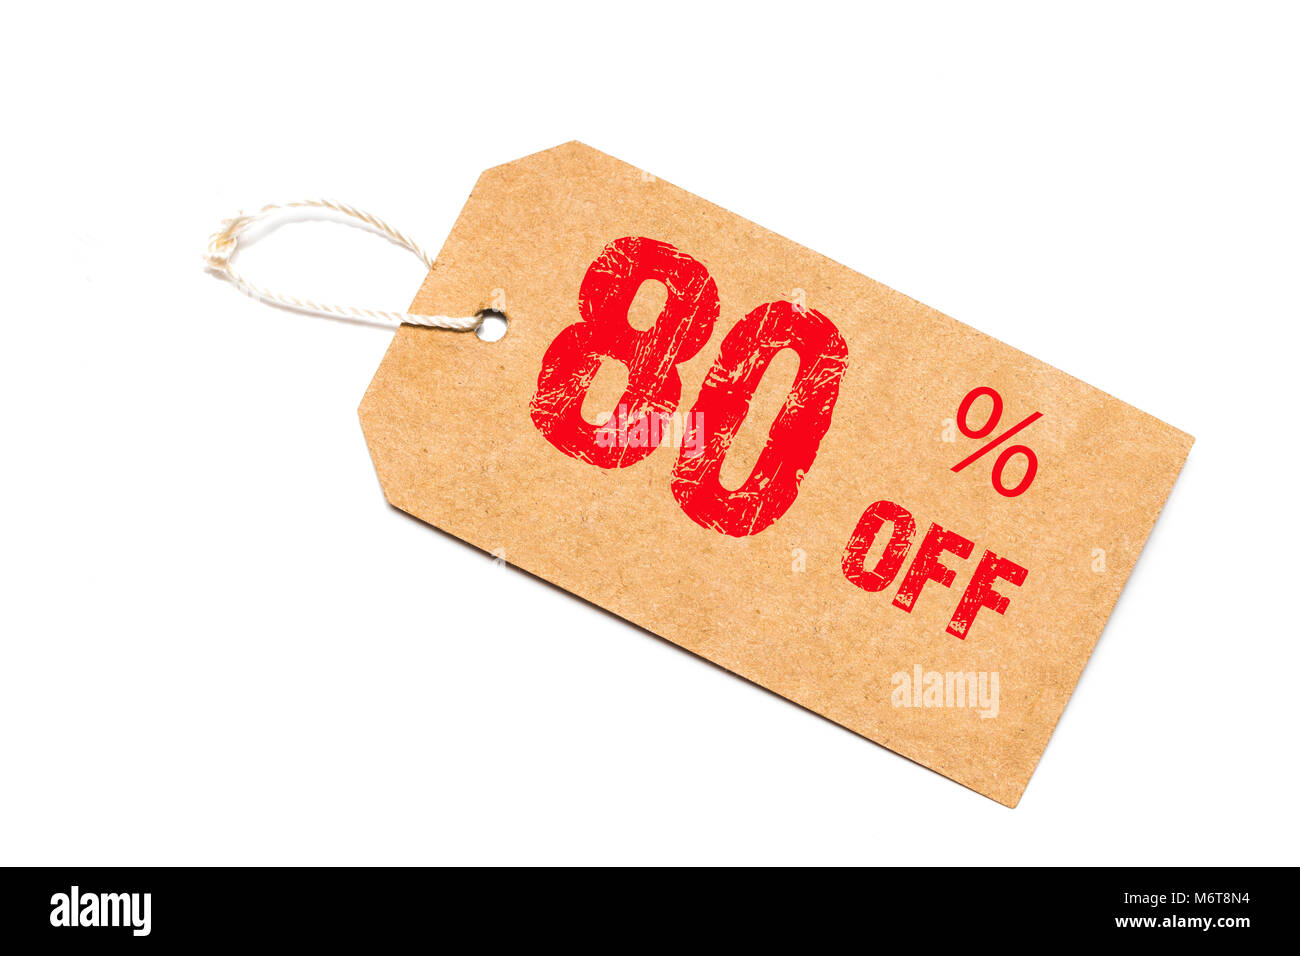 eighty percent off discount - a paper price tag on white background. - Stock Image